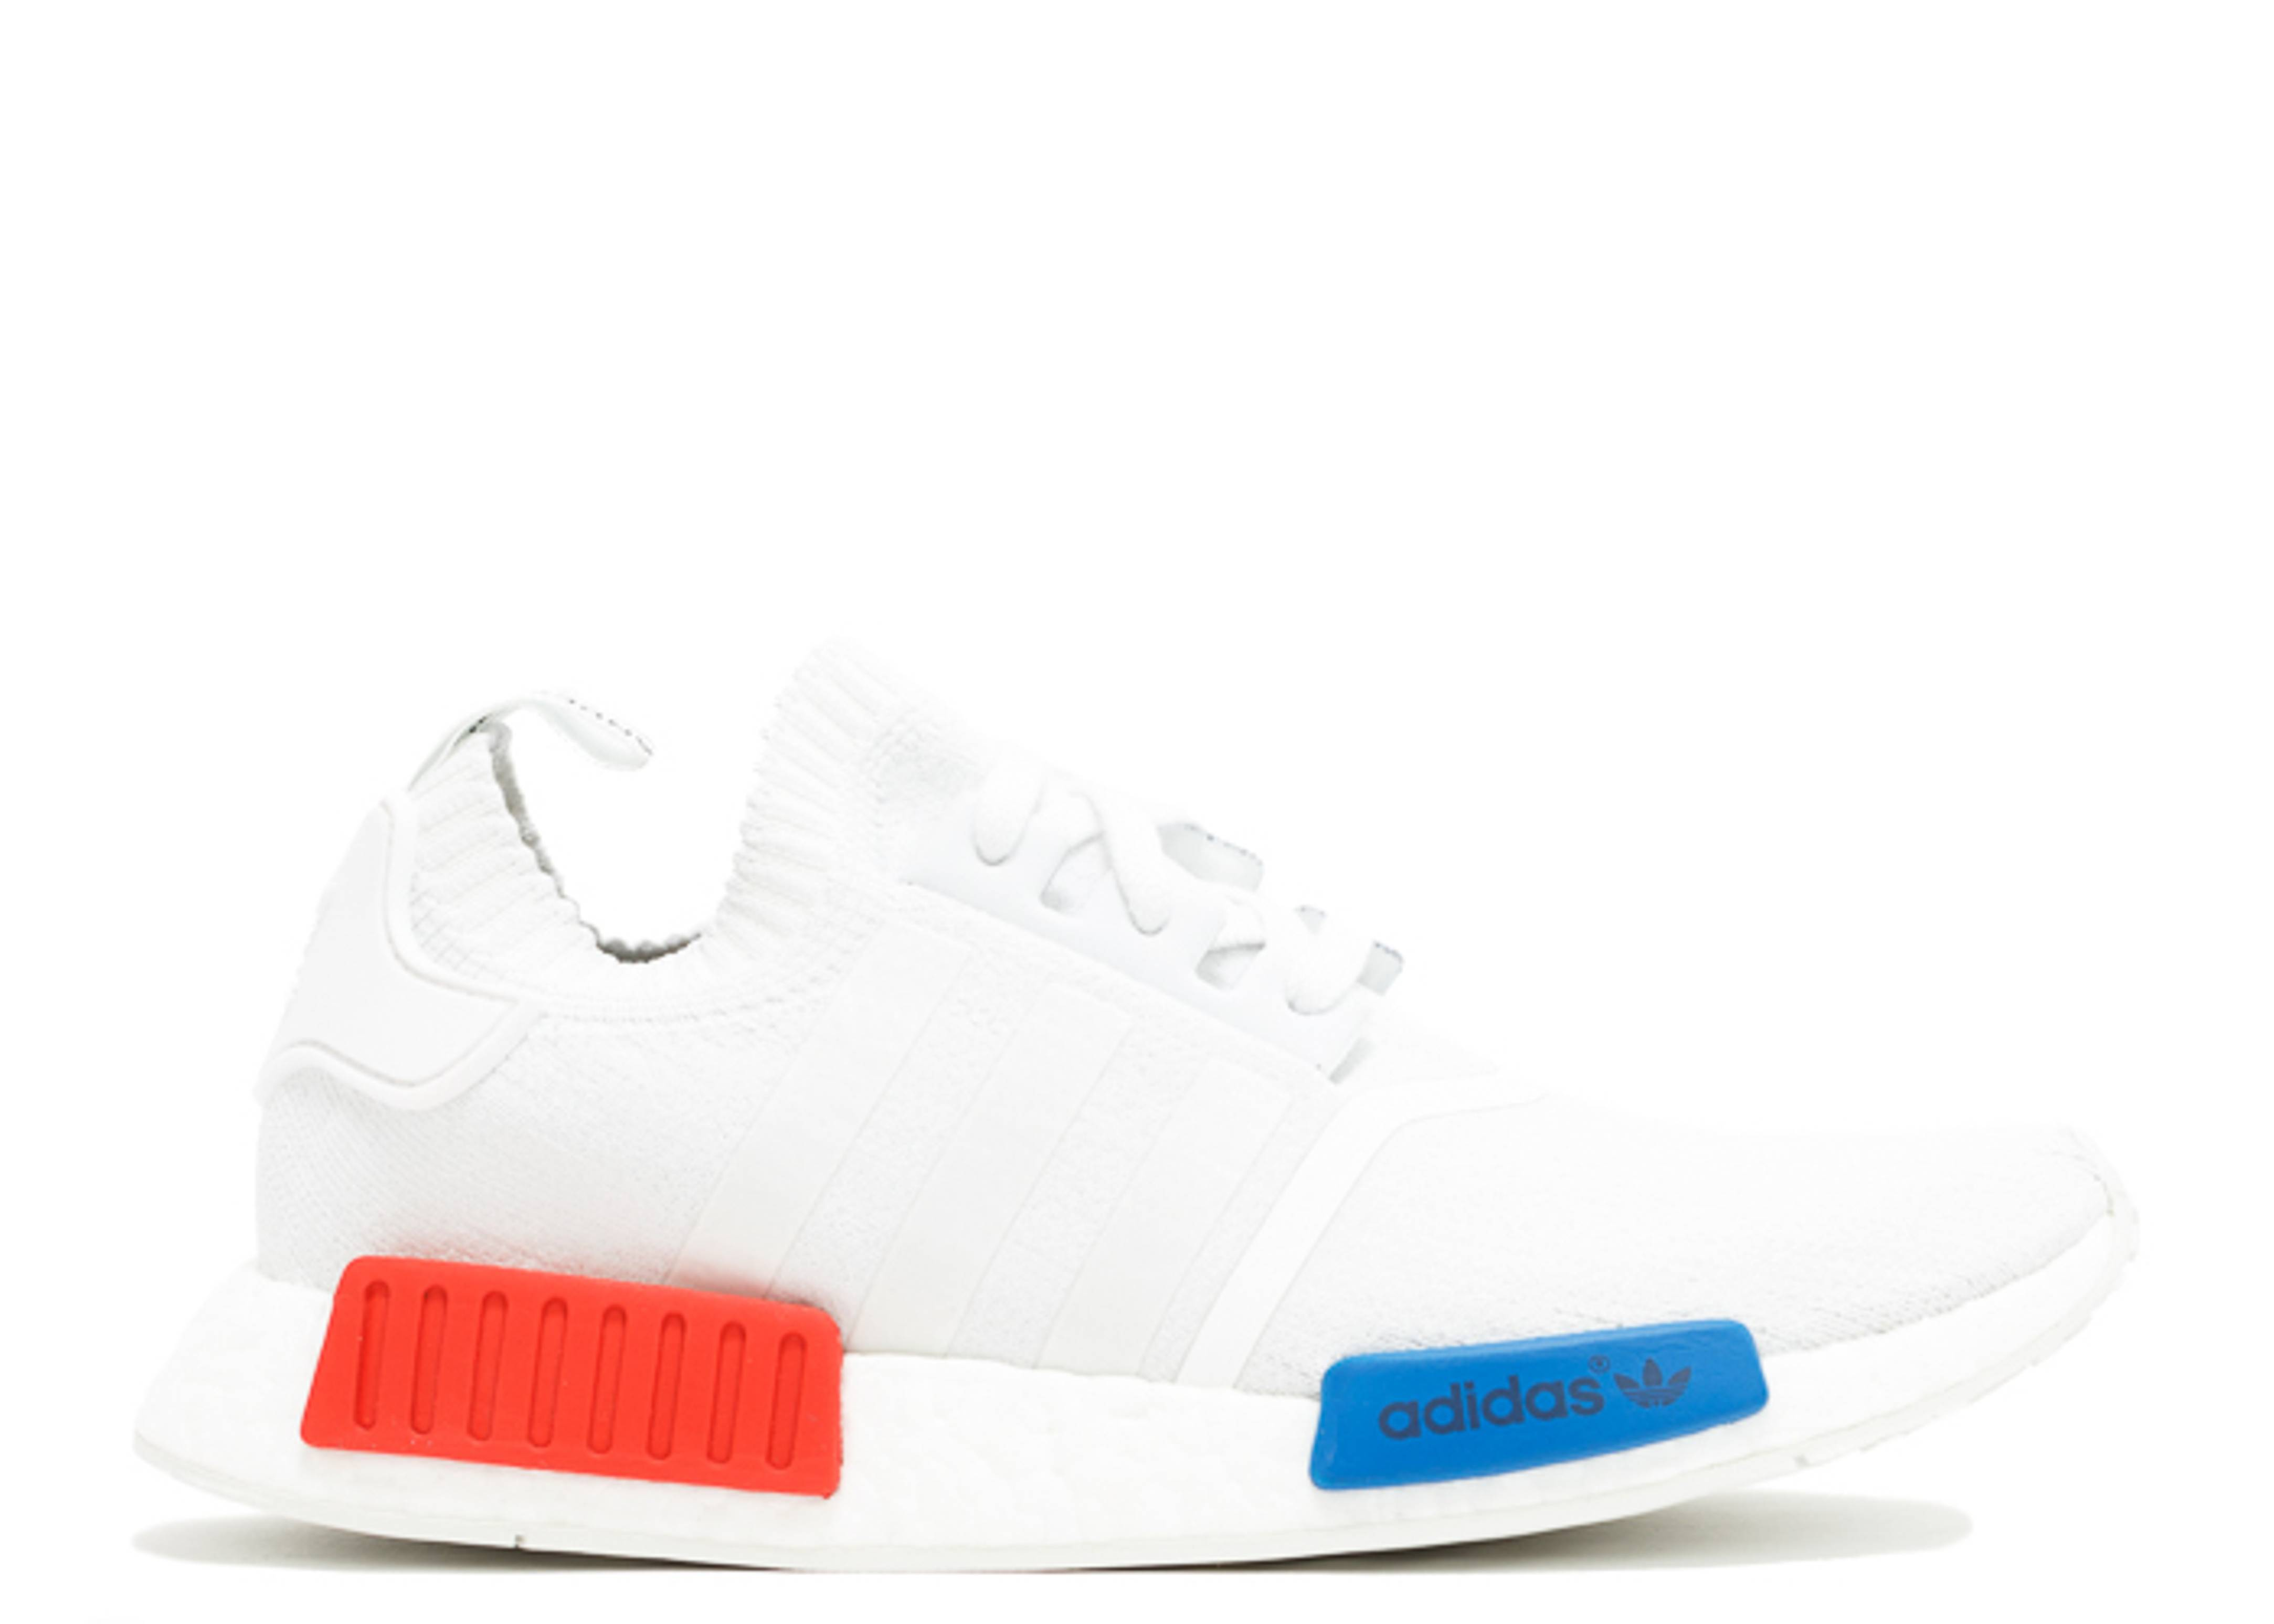 qvbdez nmd runner pk - white/red/blue | Flight Club